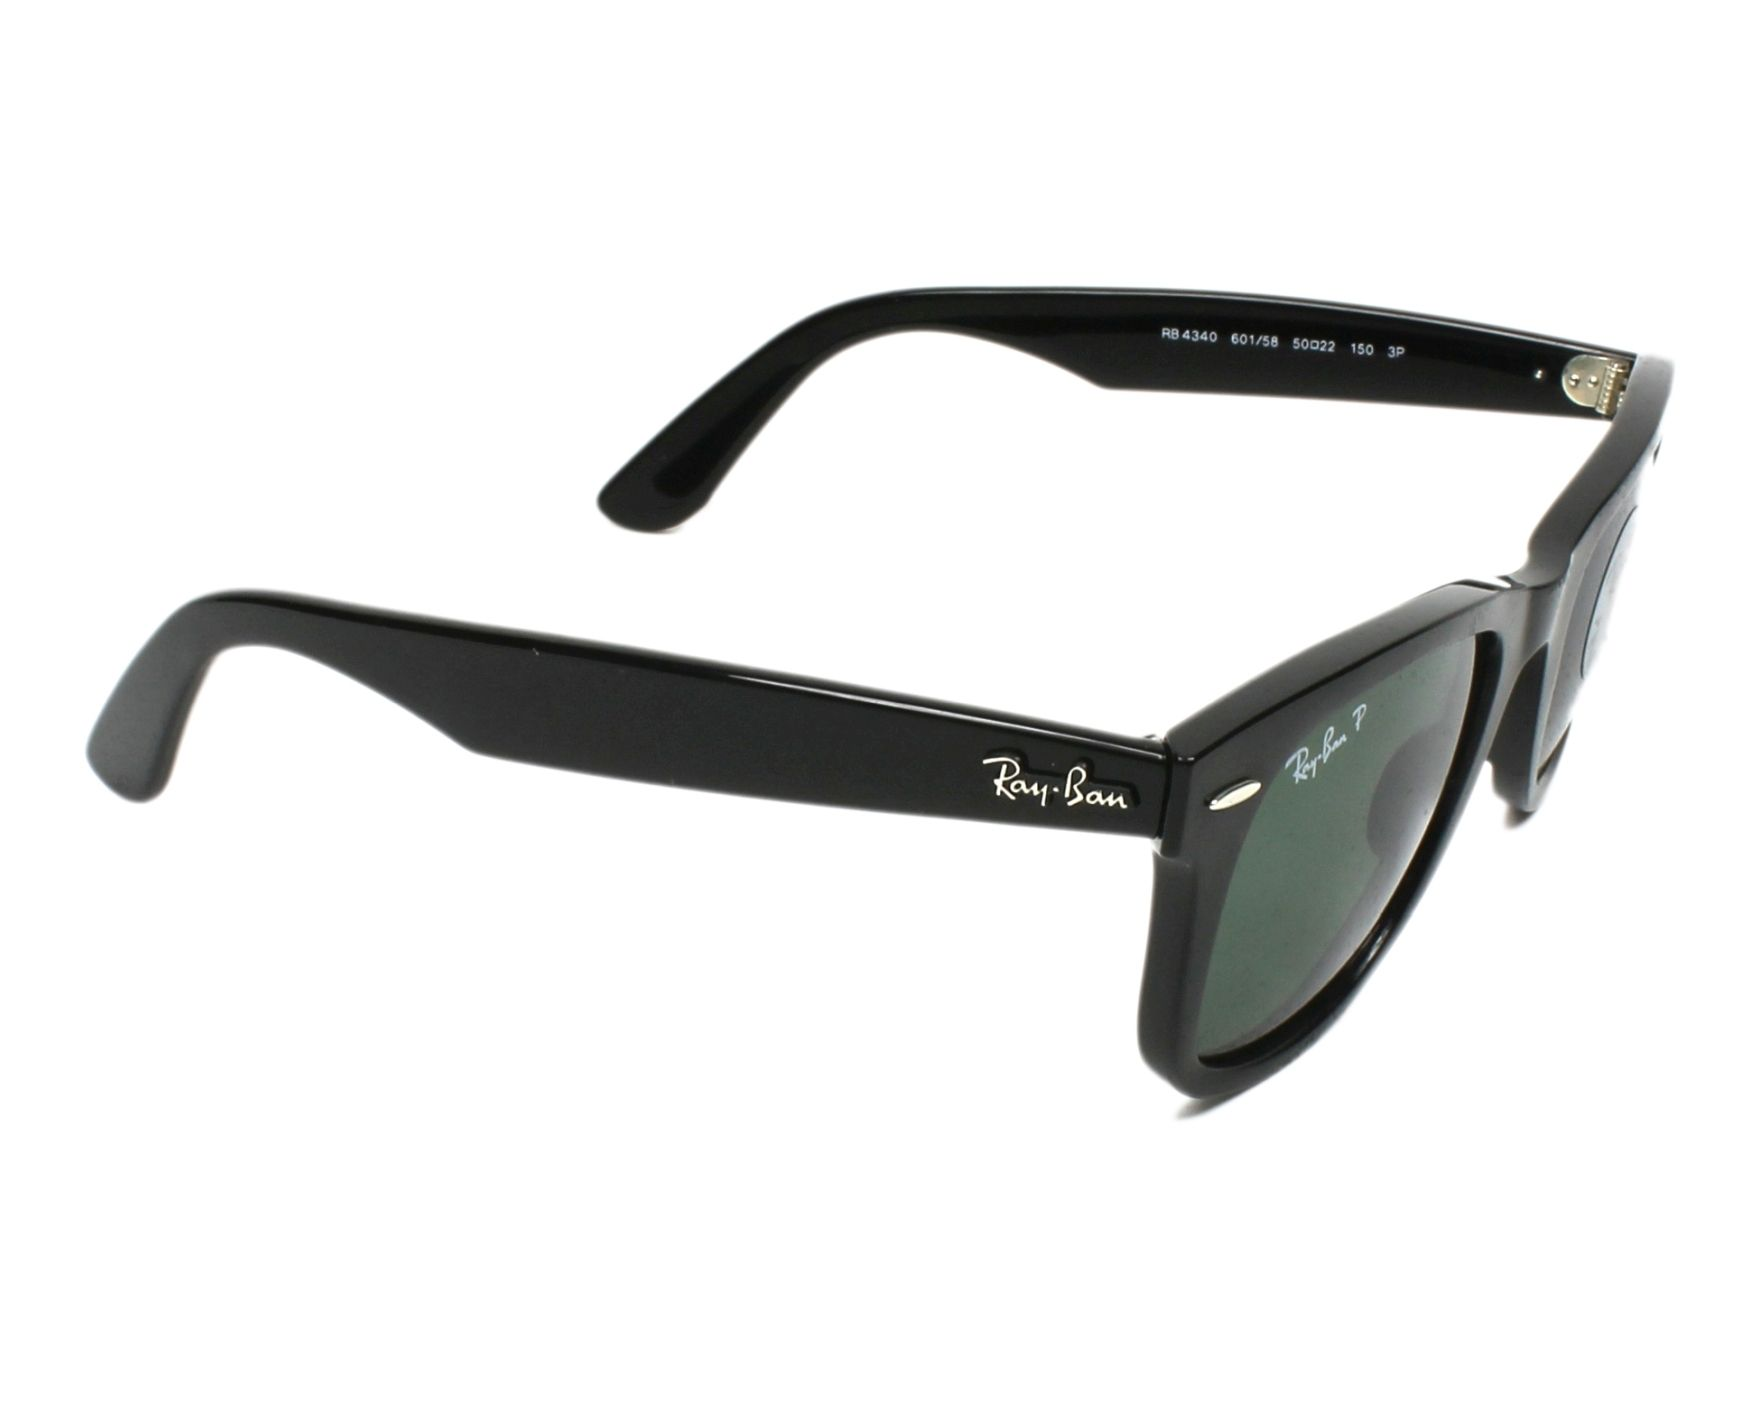 1b00ec549fd3b Sunglasses Ray-Ban RB-4340 601 58 50-22 Black side view